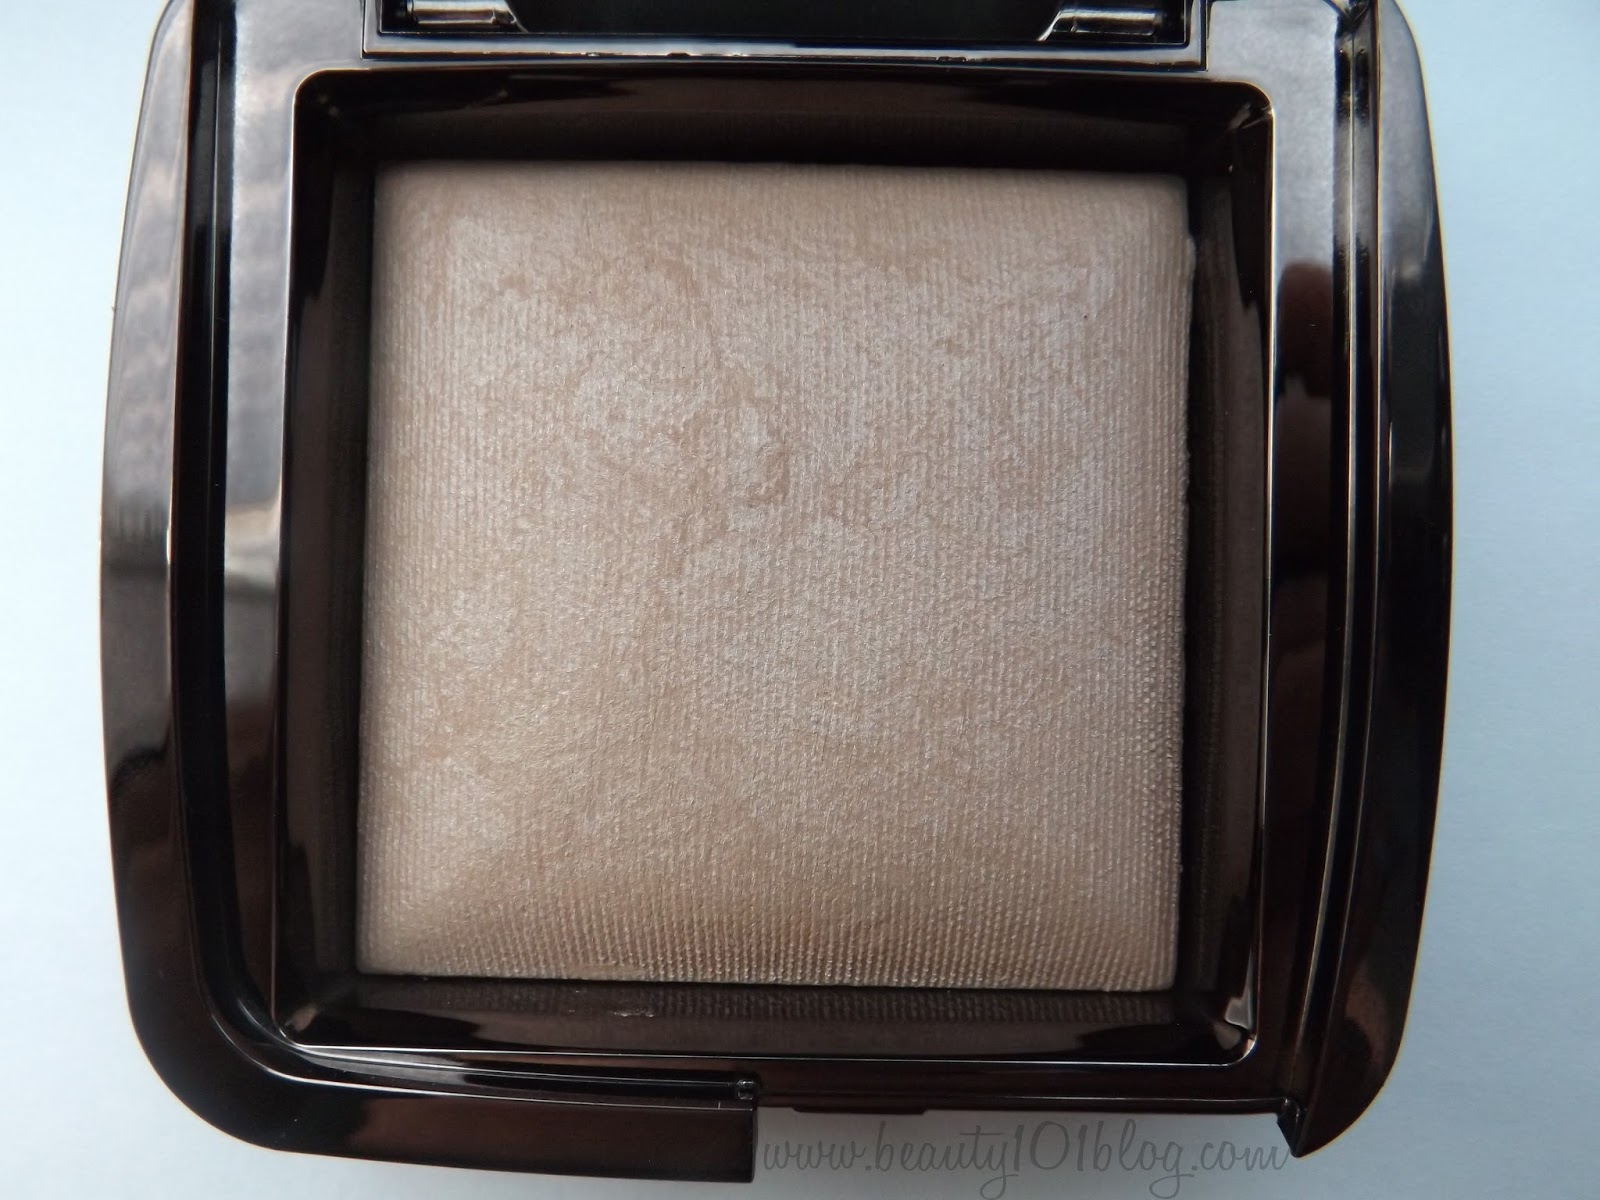 luminous light is described as a champagne pearl powder that creates a soft incandescent candlelight glow and i have to say this one is my favorite ambient lighting creates